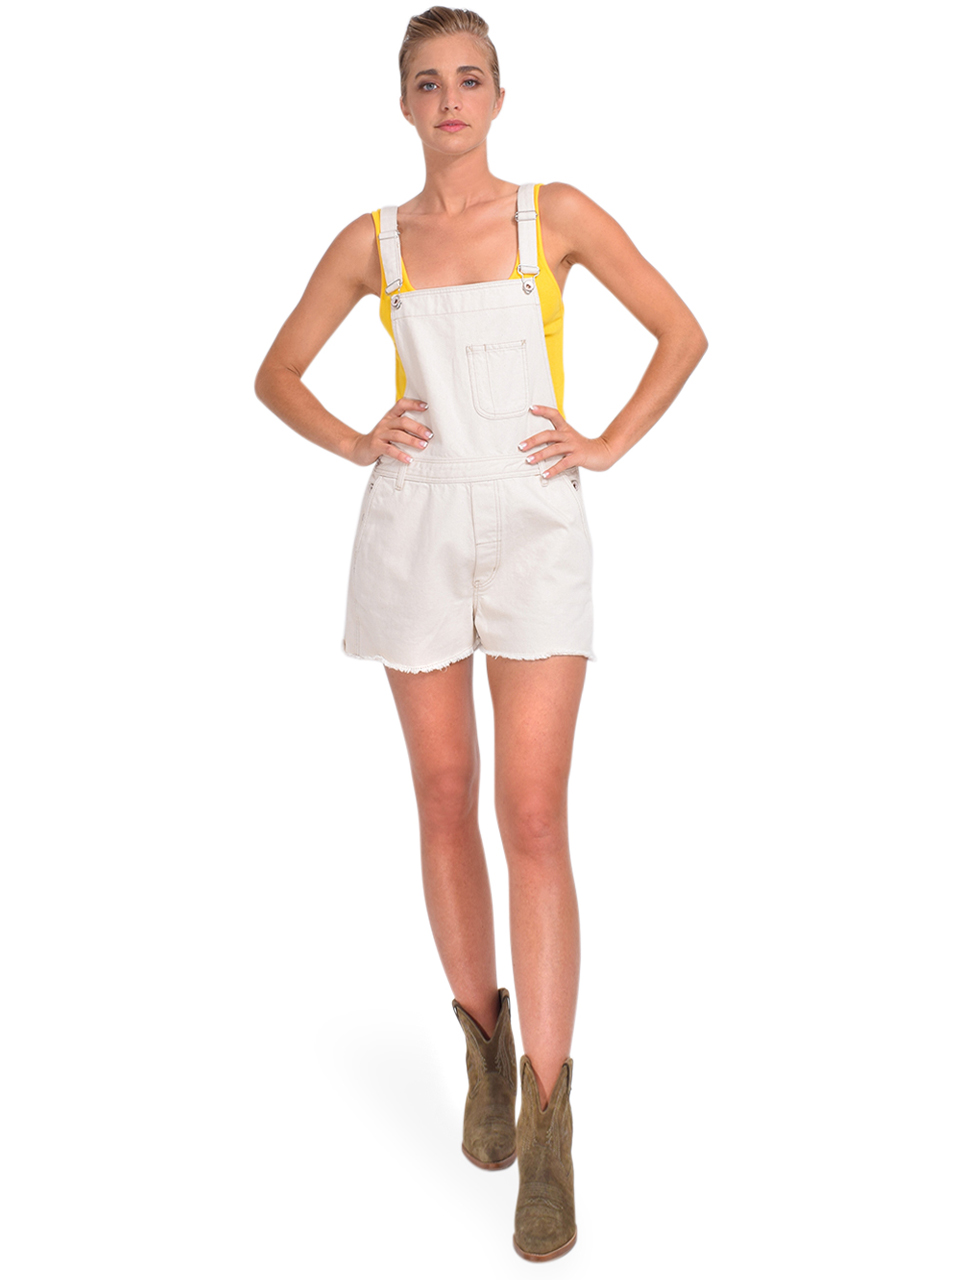 Bellerose Pachita Overall Shorts in Natural Full Outfit 2